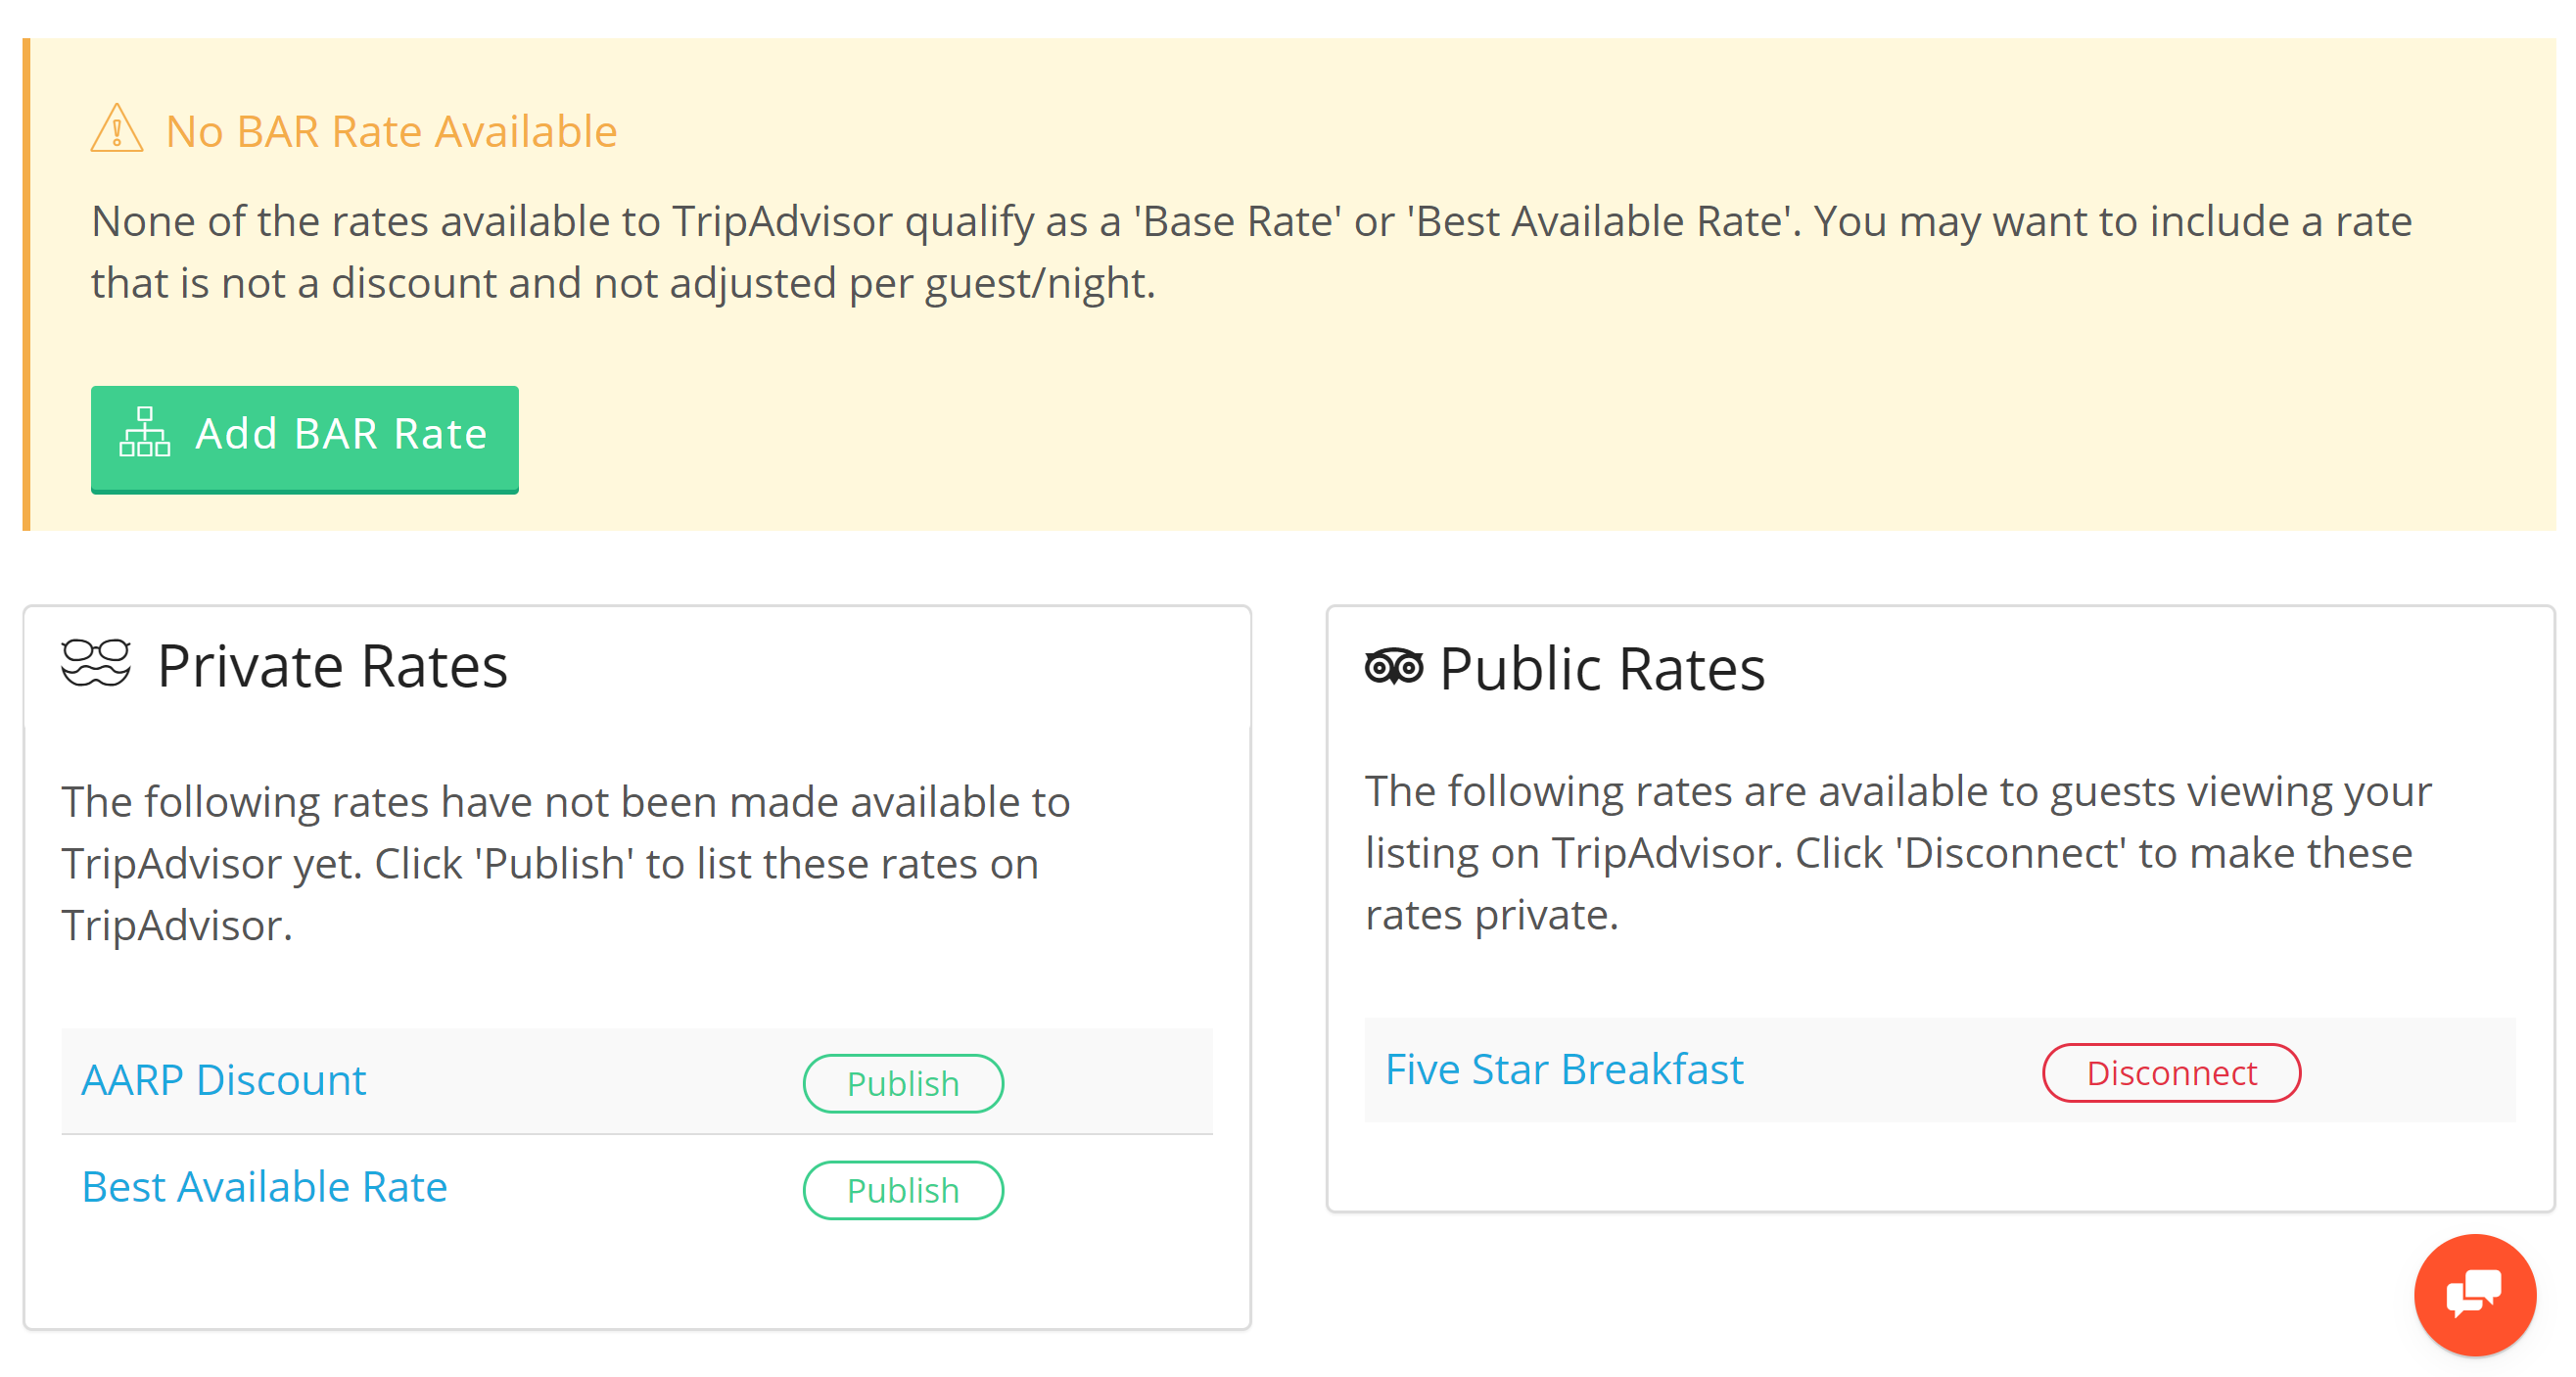 Hotel TripAdvisor TripConnect Rate Plans.